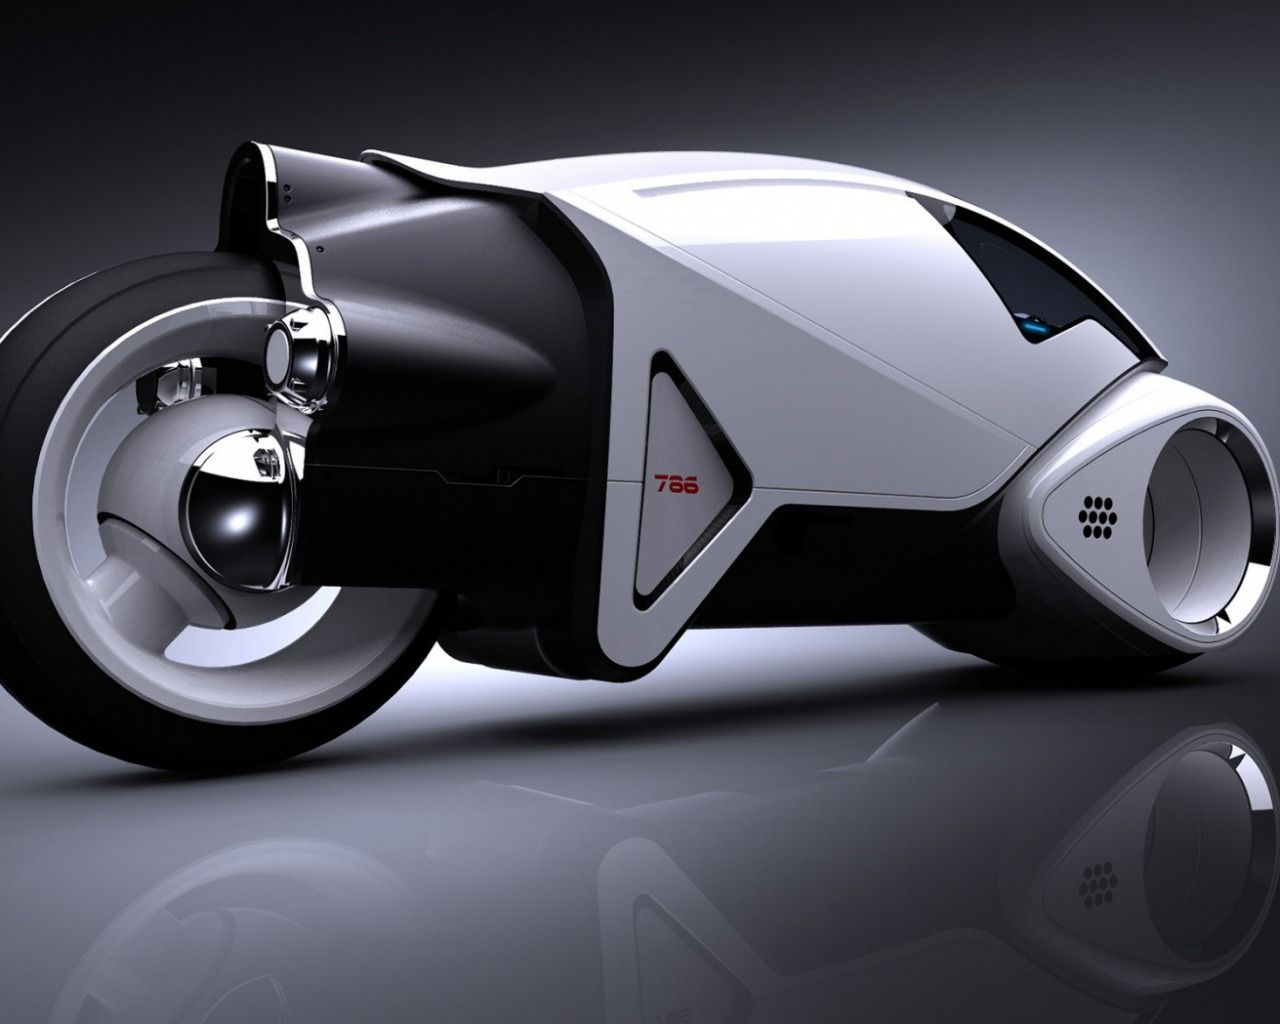 the is audi discussion looking want pretty bike lunas comments apex baller add luna ebikes r s to